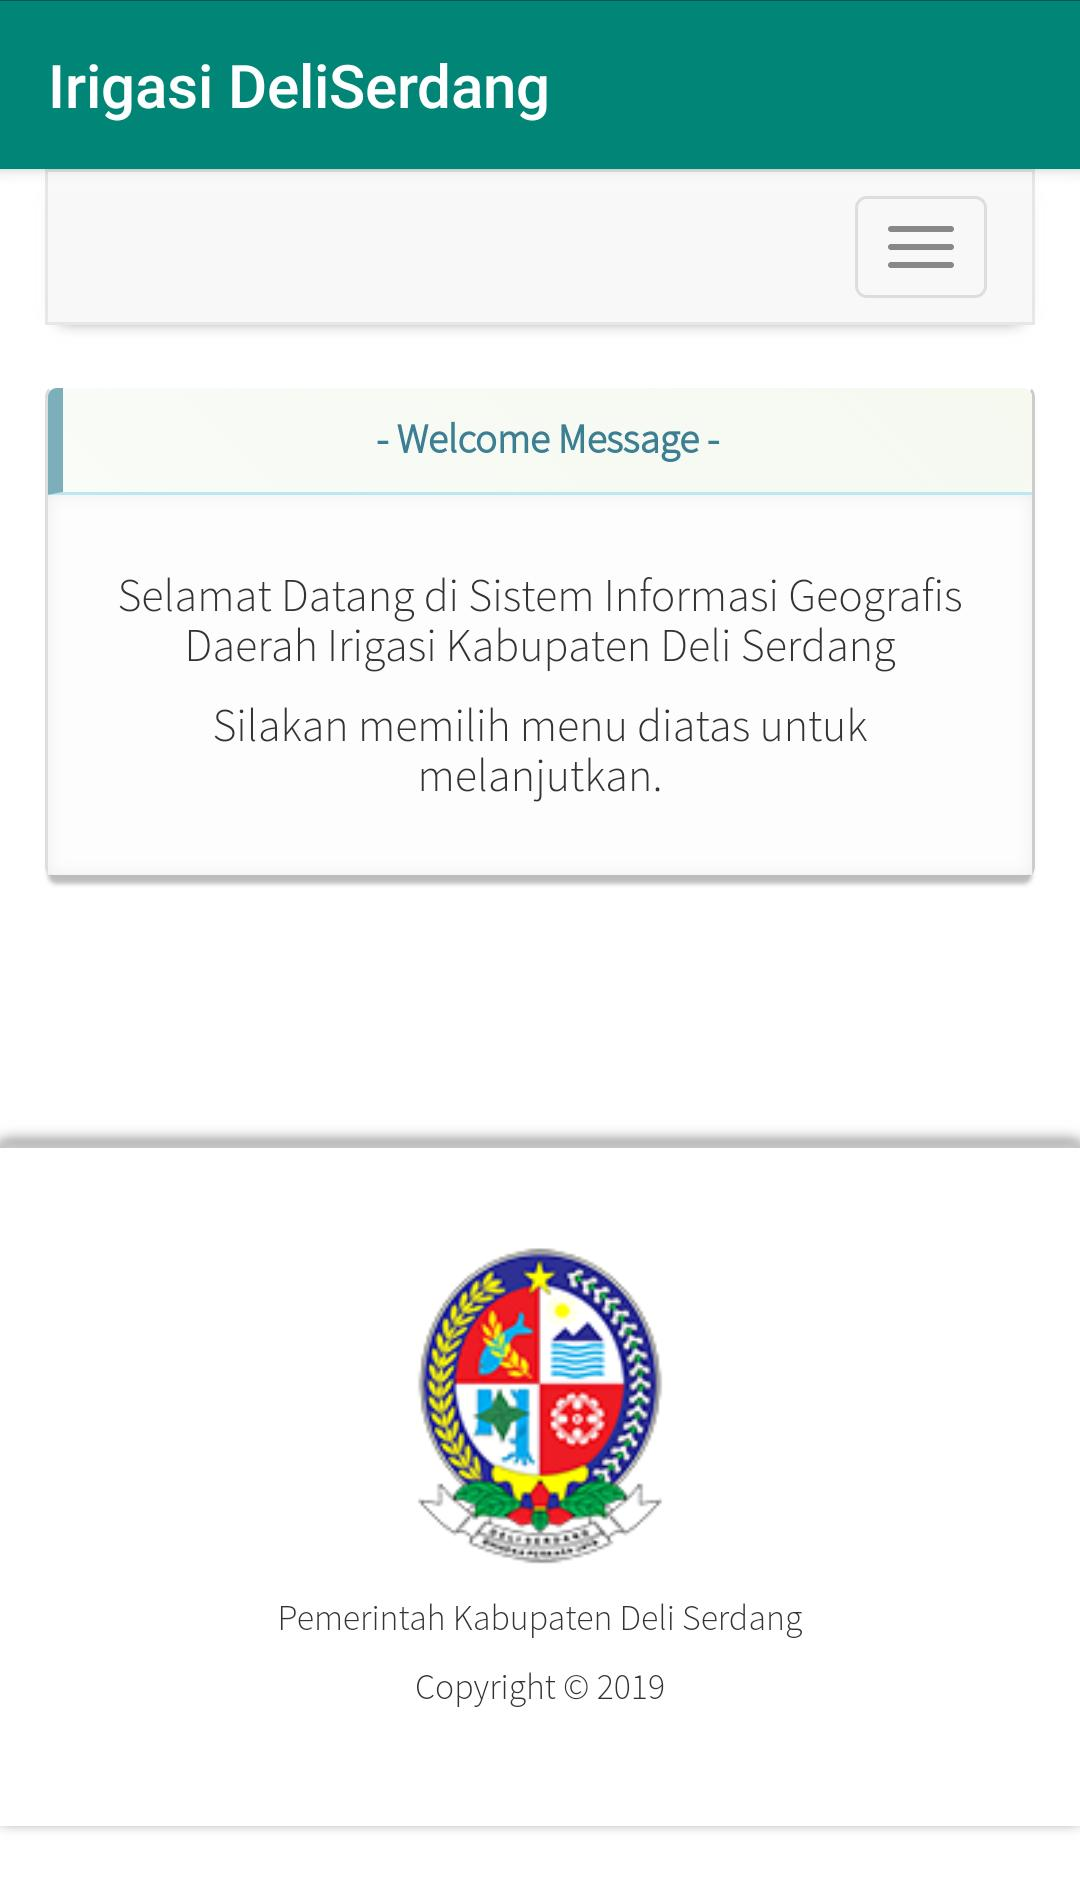 Irigasi Deli Serdang For Android Apk Download